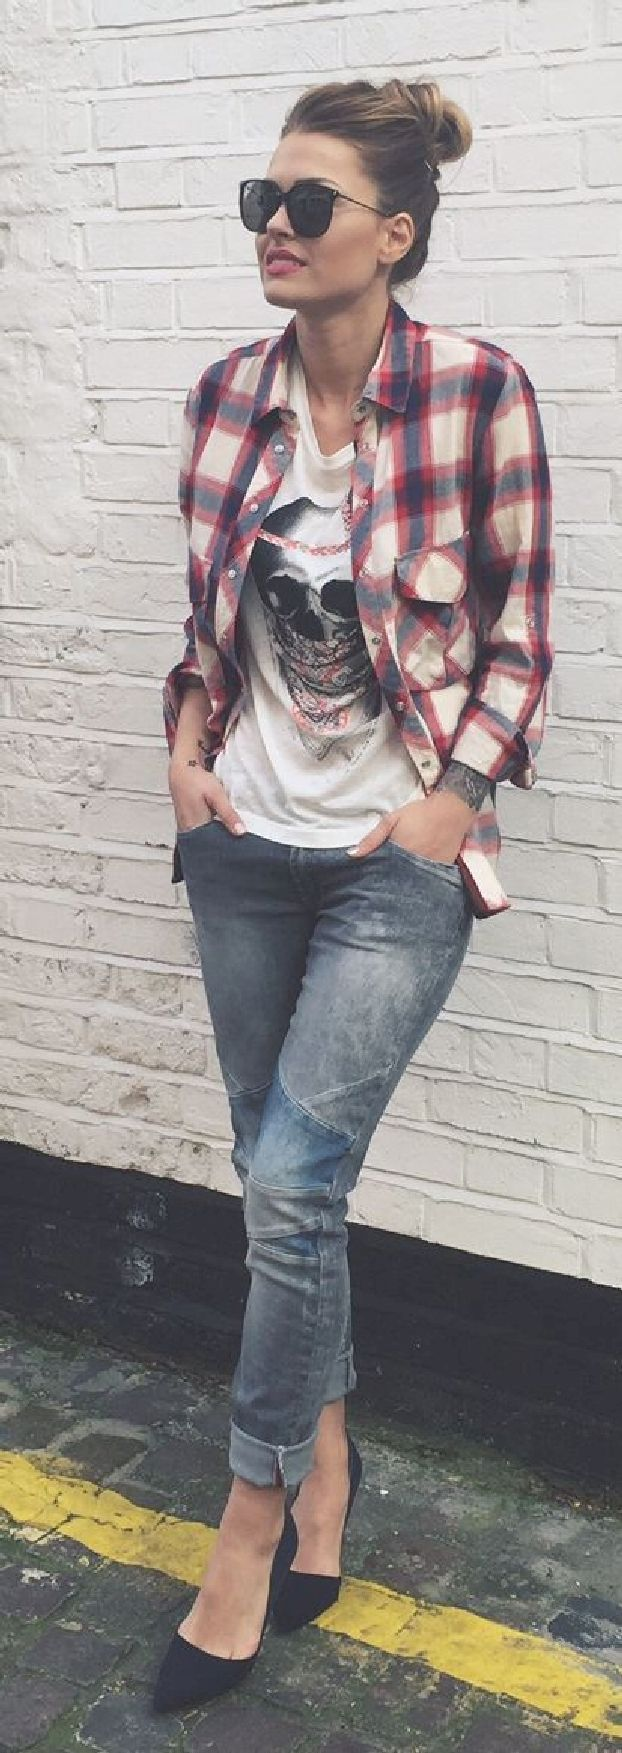 Awesome 55 Casual Flannel Shirt Outfits for This Summer from https://www.fashionetter.com/2017/05/04/55-casual-flannel-shirt-outfits-for-this-summer/